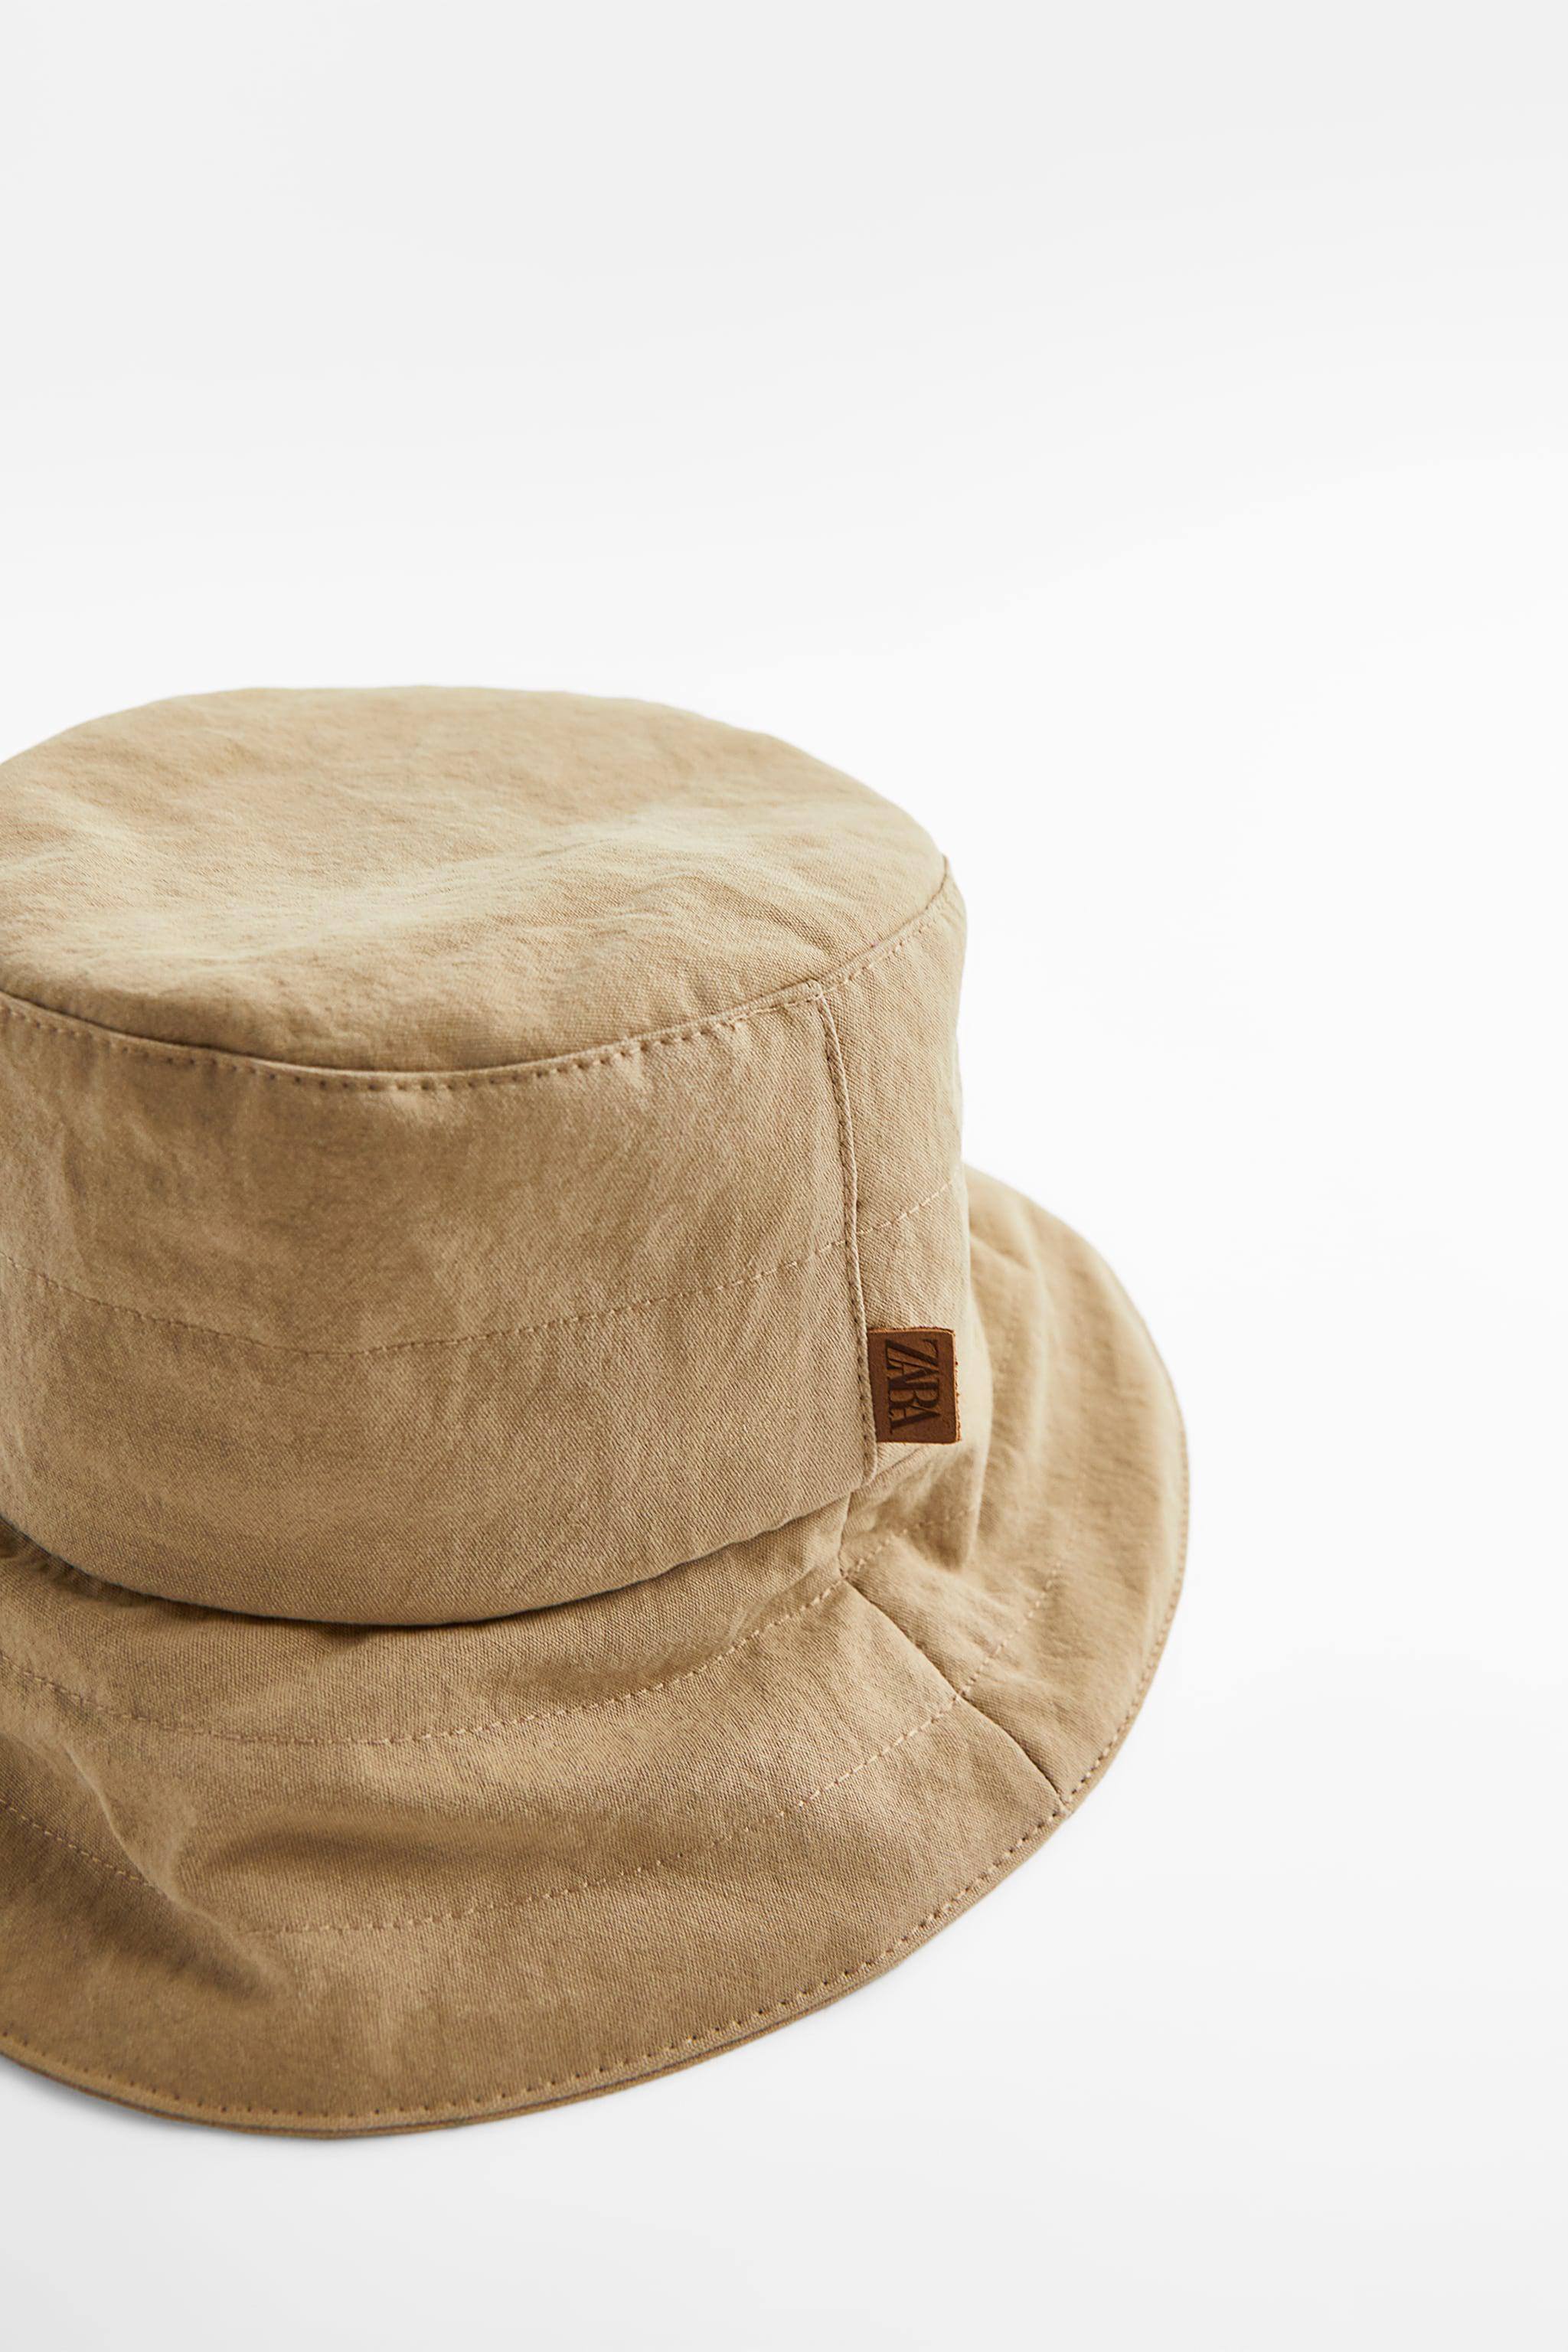 QUILTED BUCKET HAT 3